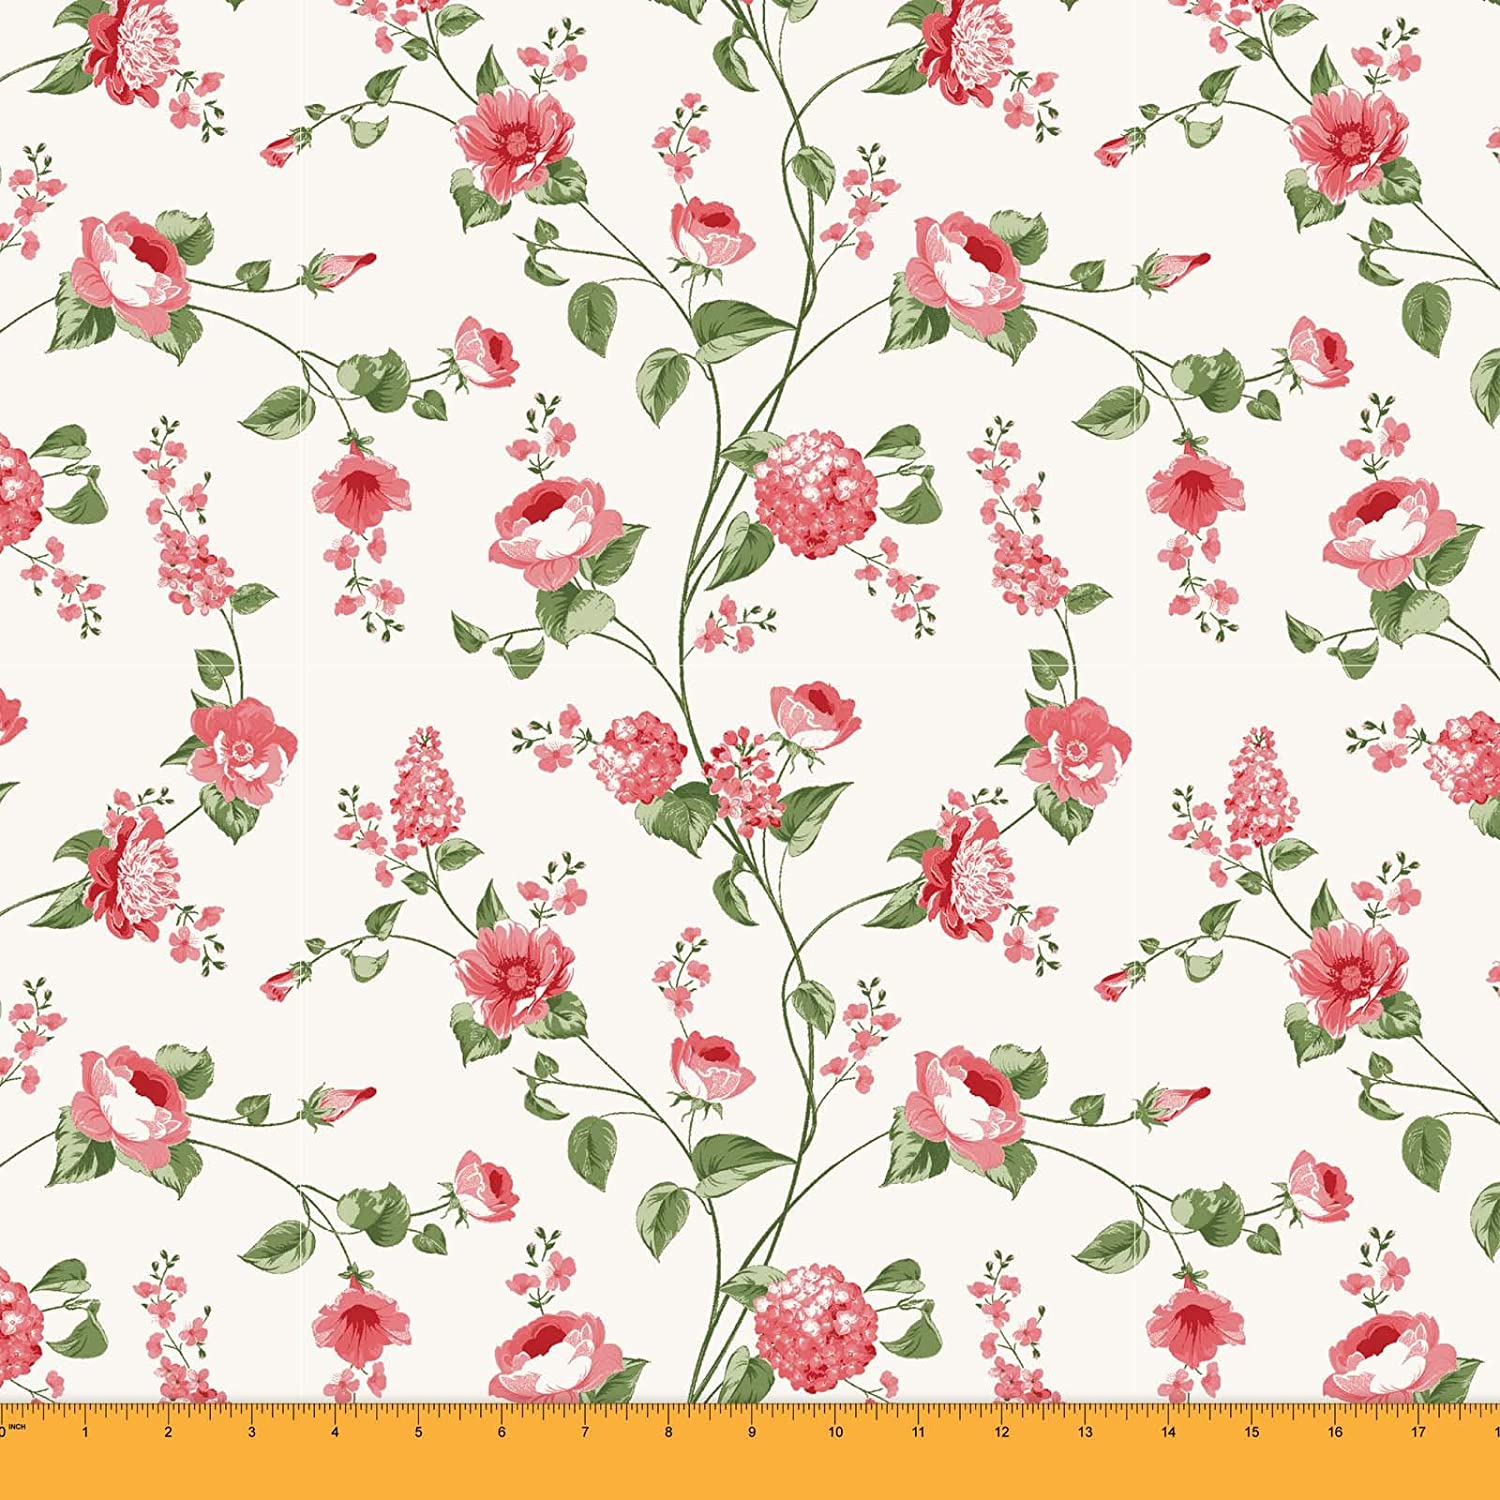 Soimoi 60 Wide 2-Way Stretch Floral Printed Velvet Fabric By The Metre